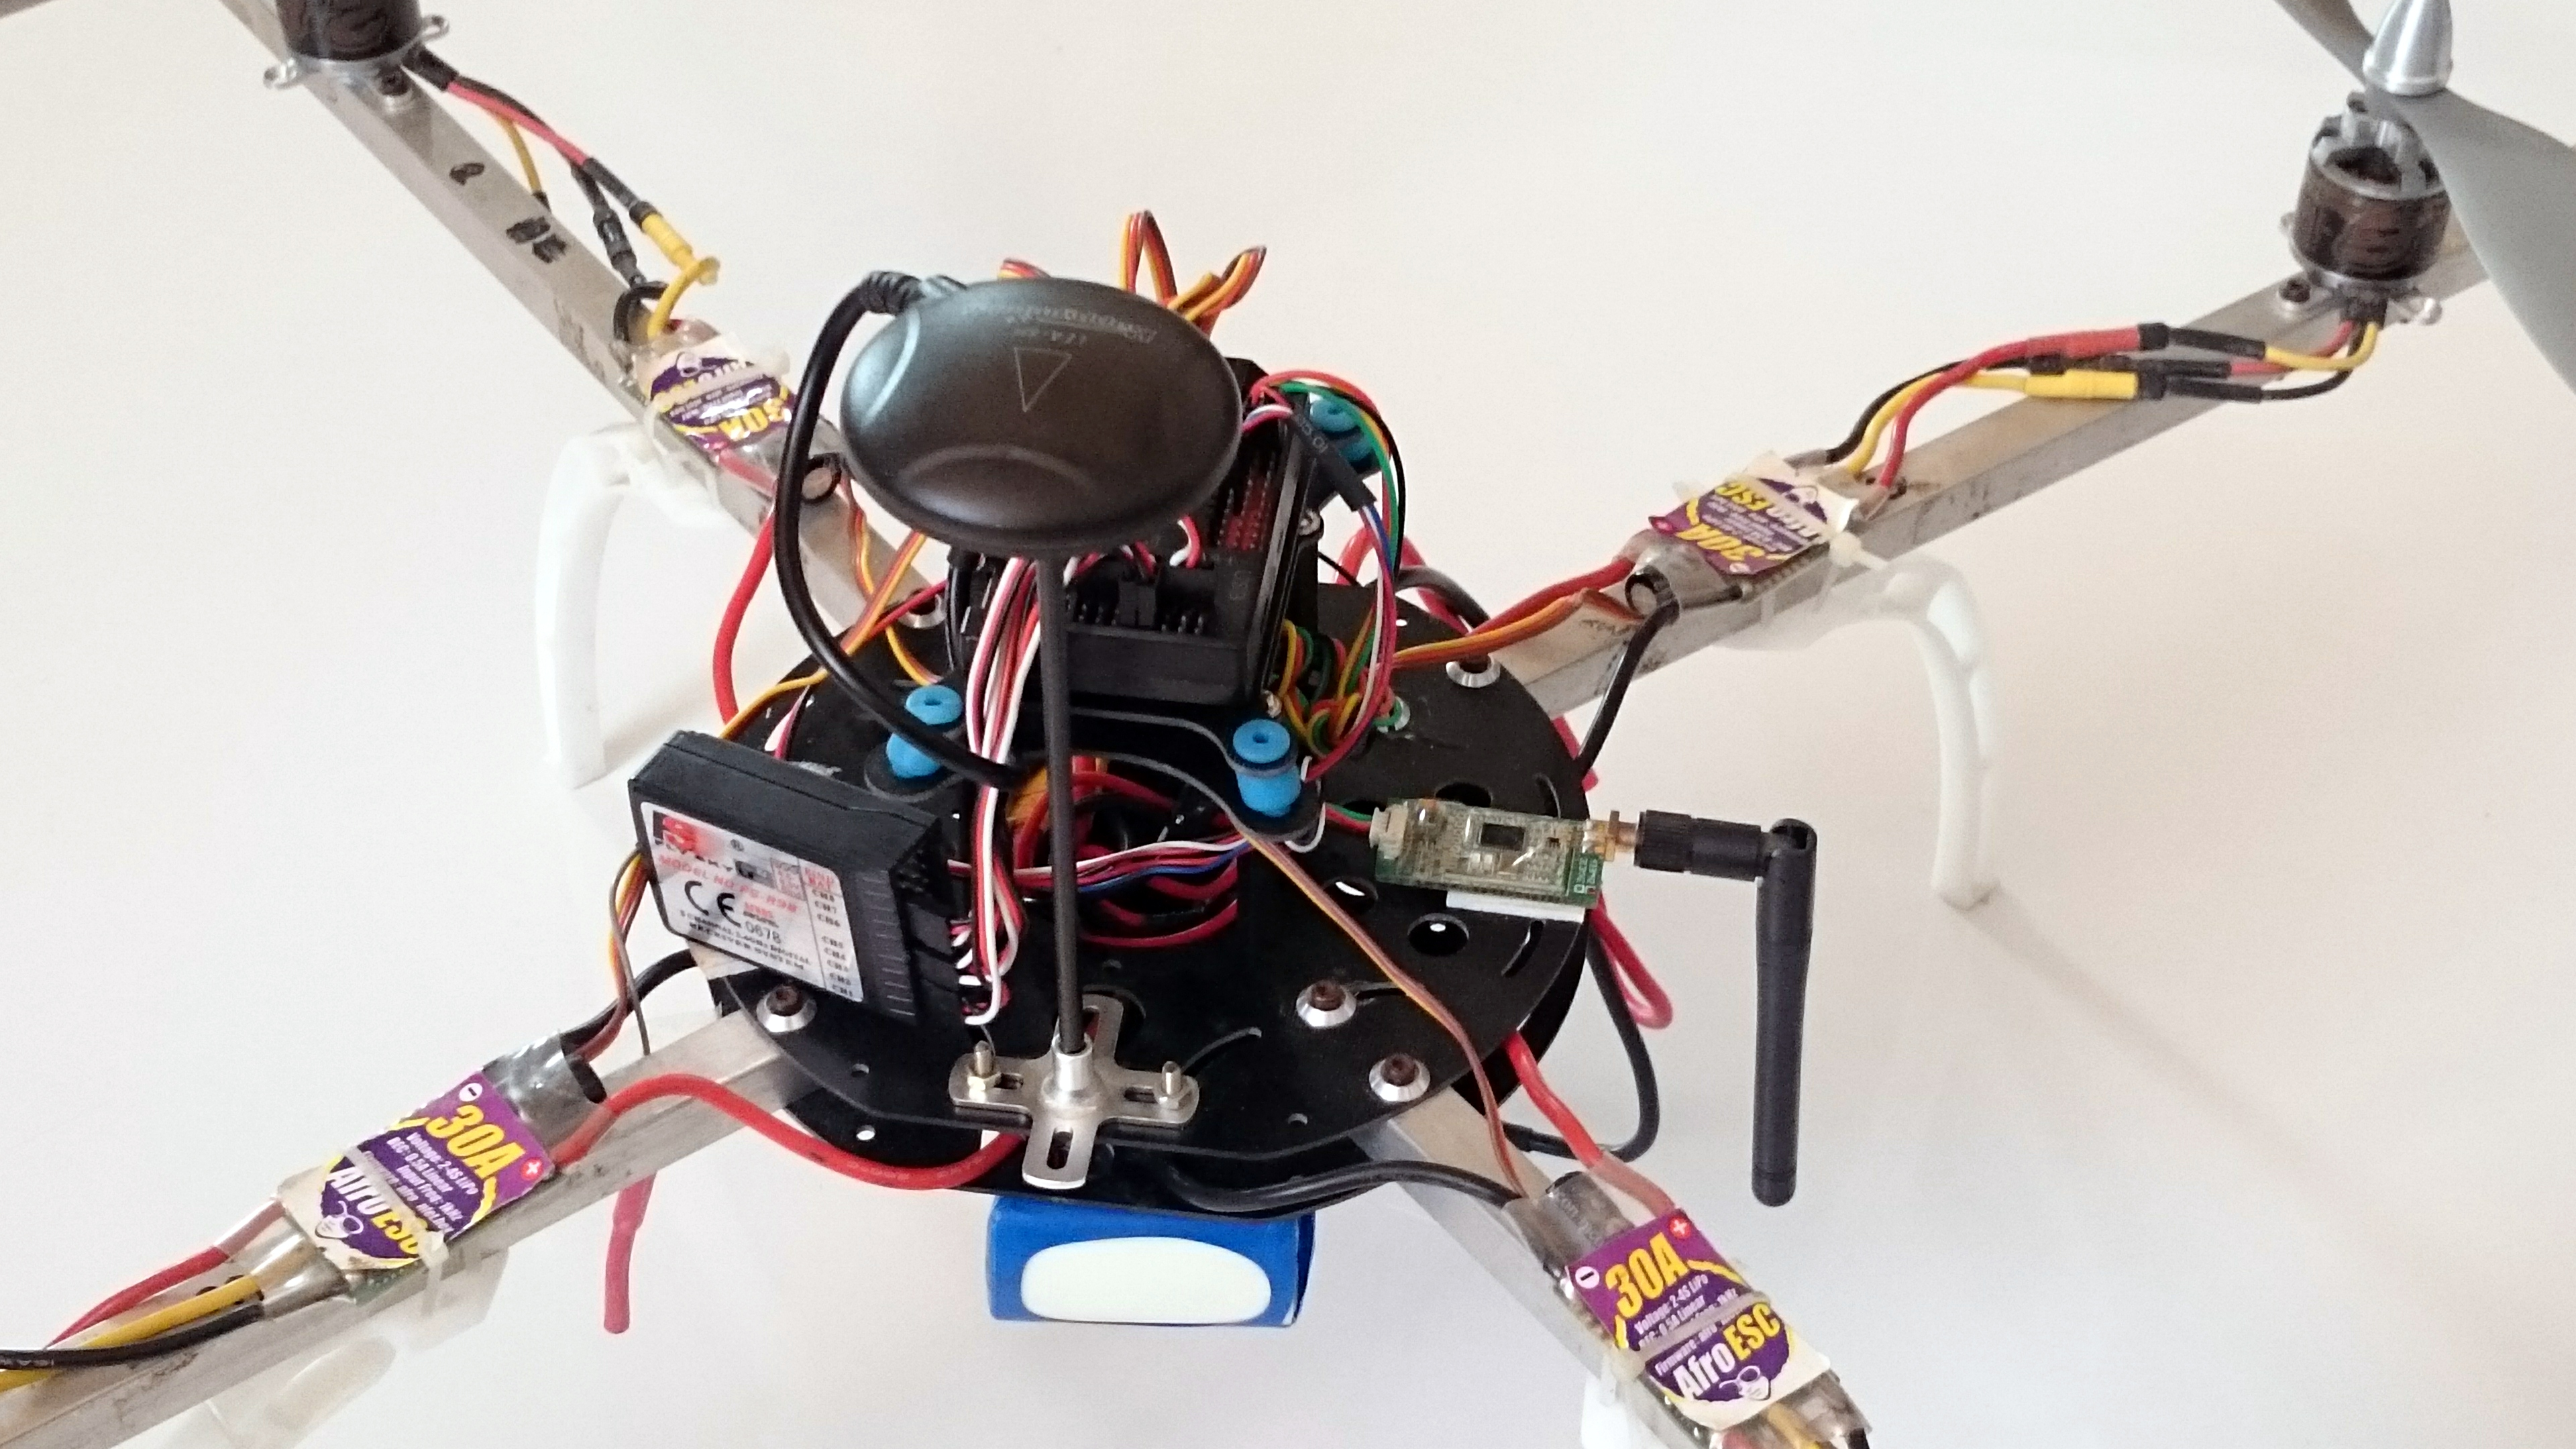 Picture of How to Build a Quadcoptor. (NTM 28-30S 800kV 300W and Arducopter APM 2.6 & 6H GPS 3DR Radio and FlySky TH9X)